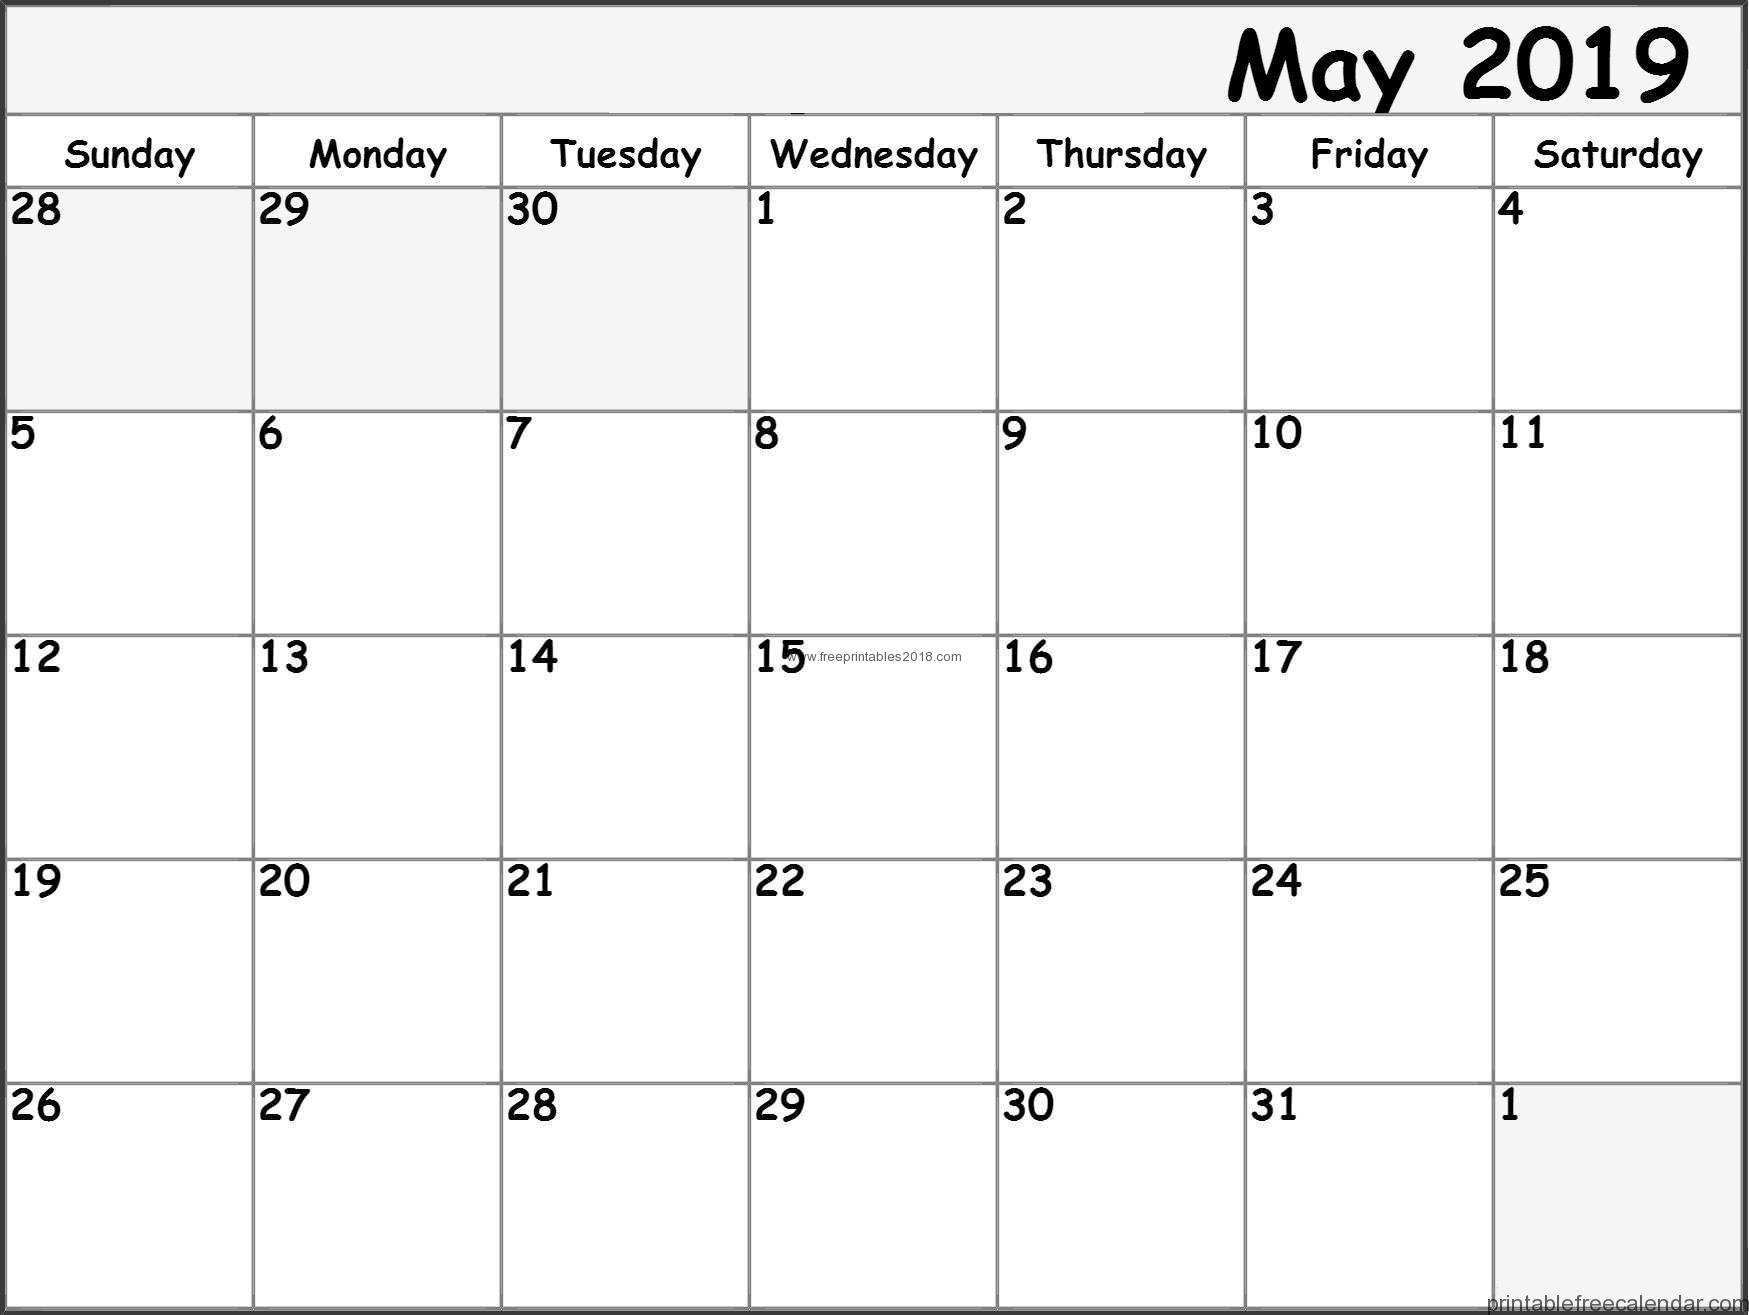 Free Printable May 2019 Calendar Templates | Free Printables 2019 with regard to Fancy August Printable Calendar Template